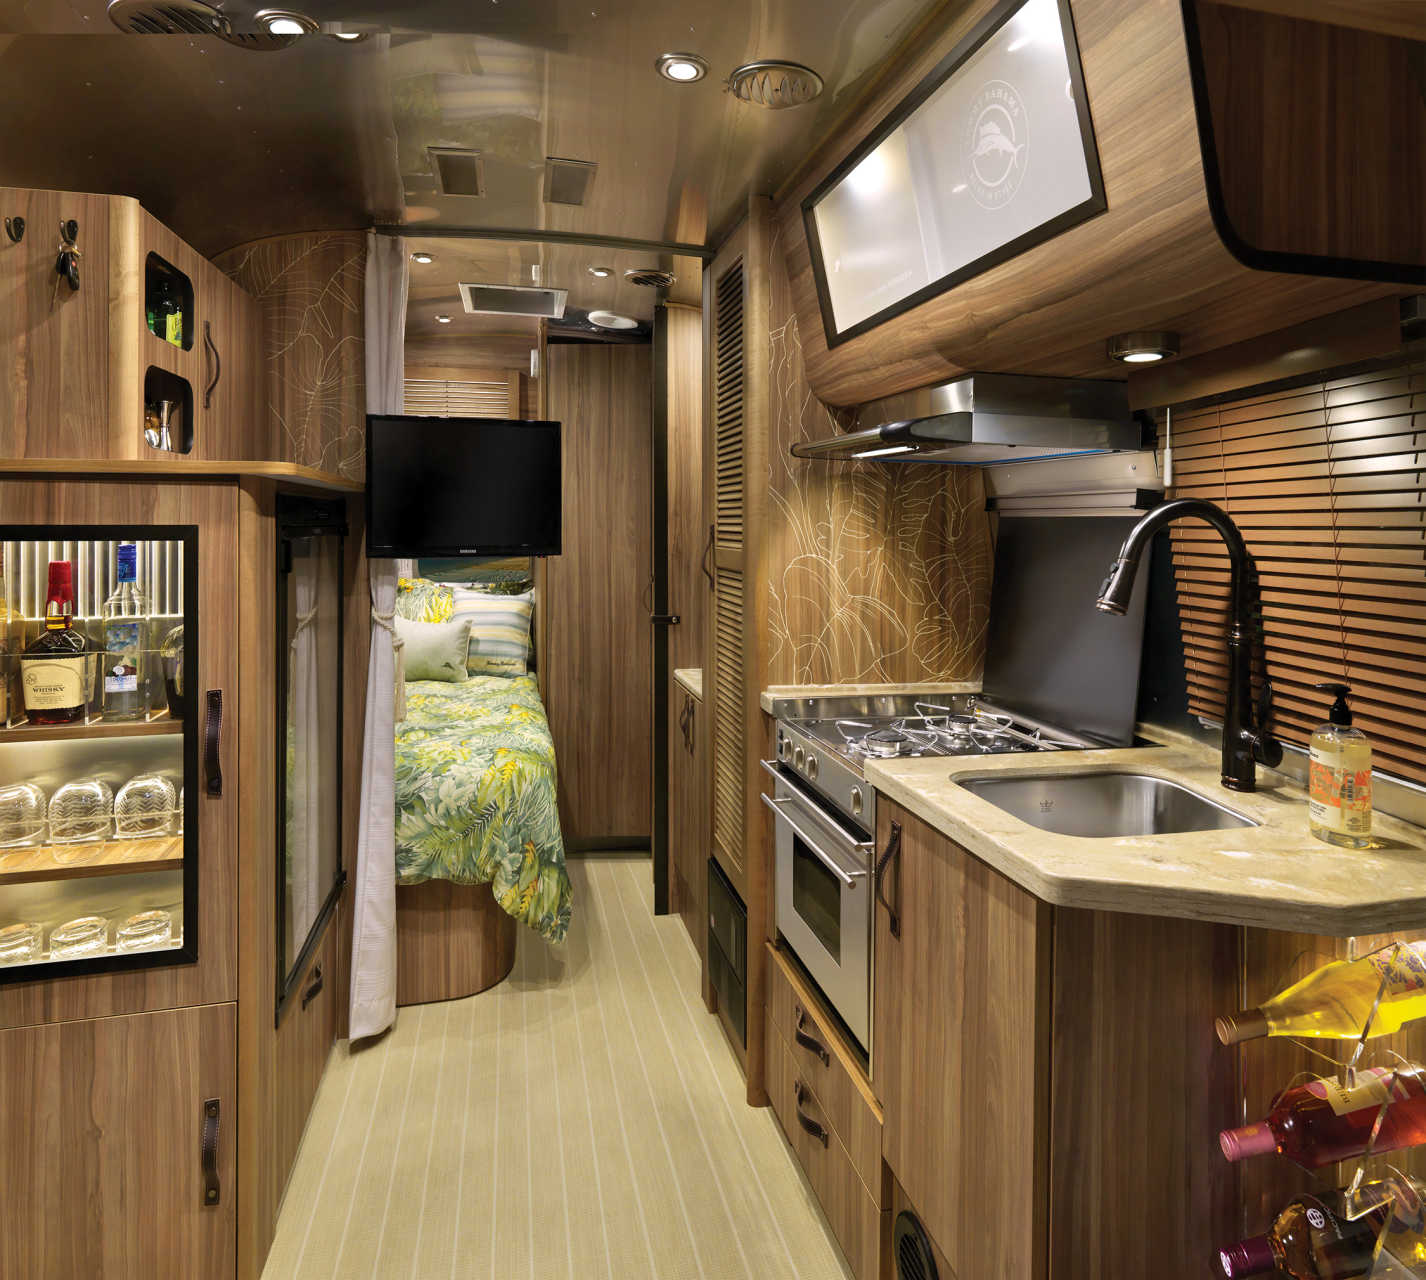 The Airstream Tommy Bahama comes to Germany